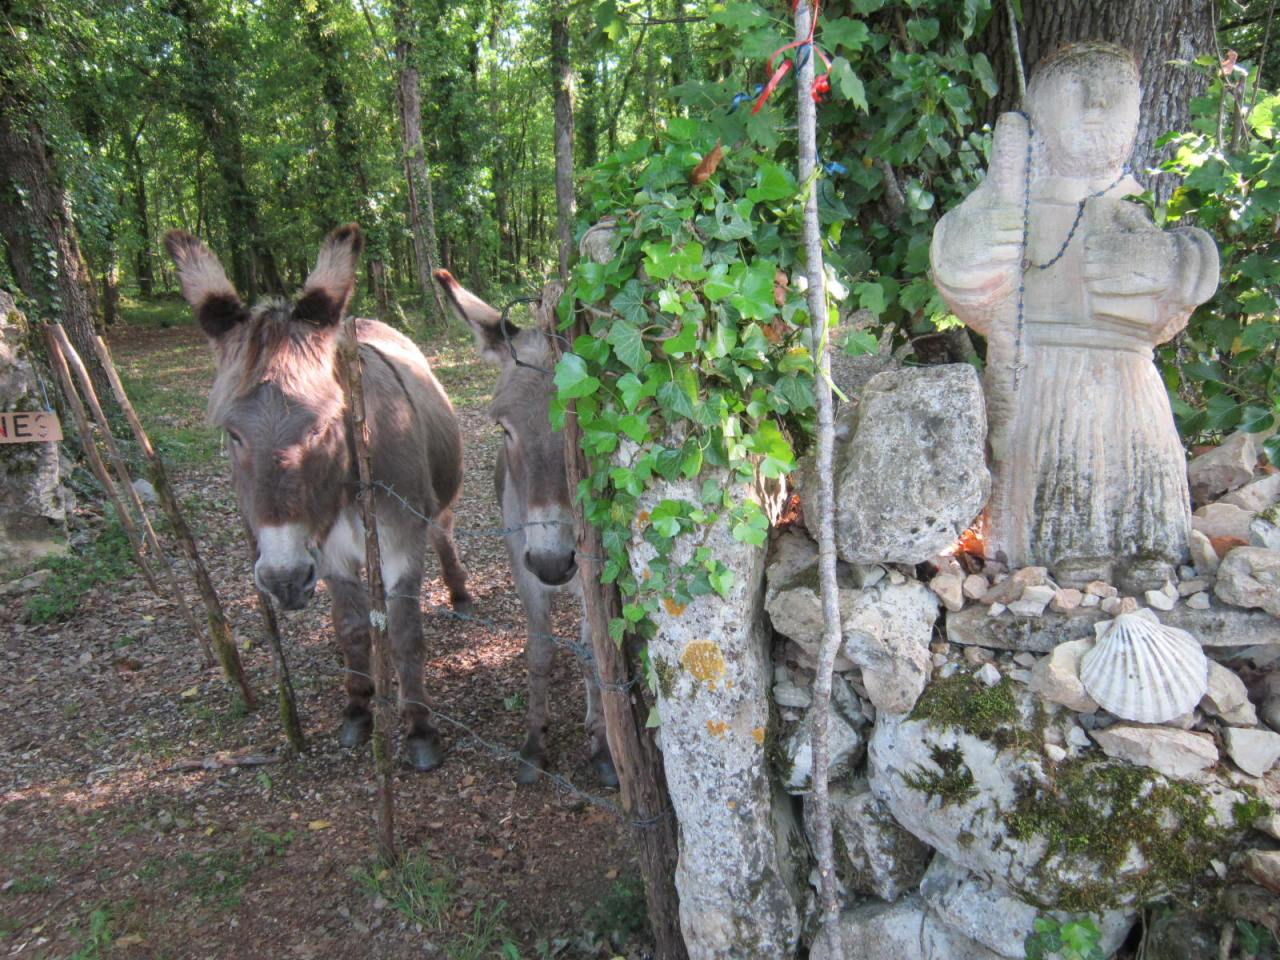 Donkeys on Le Puy Way in France